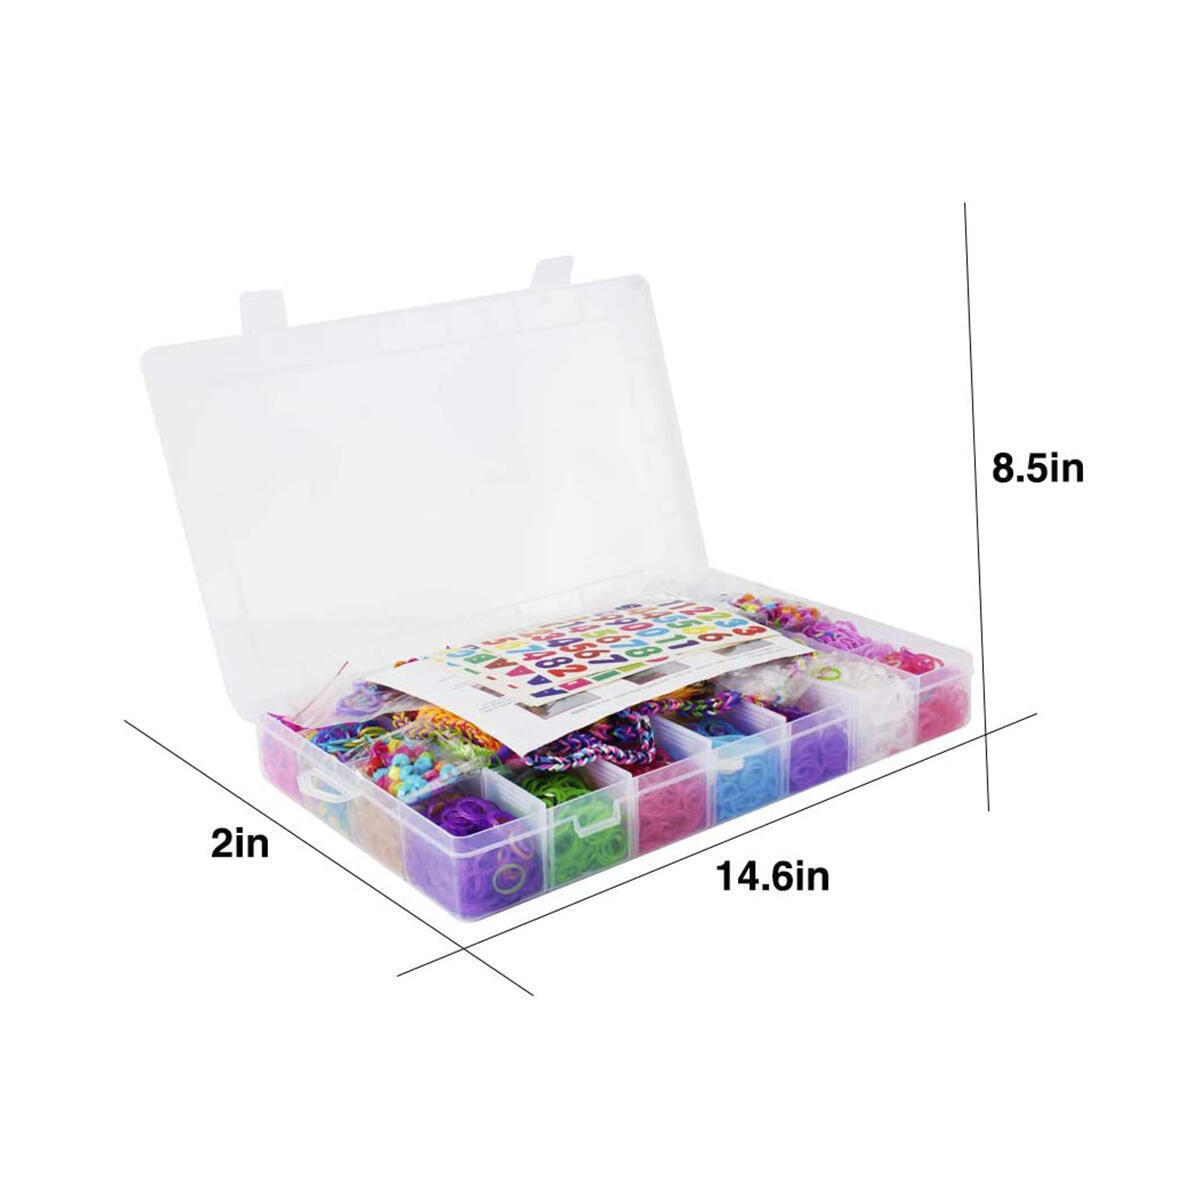 HANMUN 12000+ Pcs Rainbow Rubber Bands Bracelet Making Kit with Loom Bands Storage Container. Great Gifts for Girls and Boys ( Limiteless Different Rubber Bands Beads Stickers Kits ) …